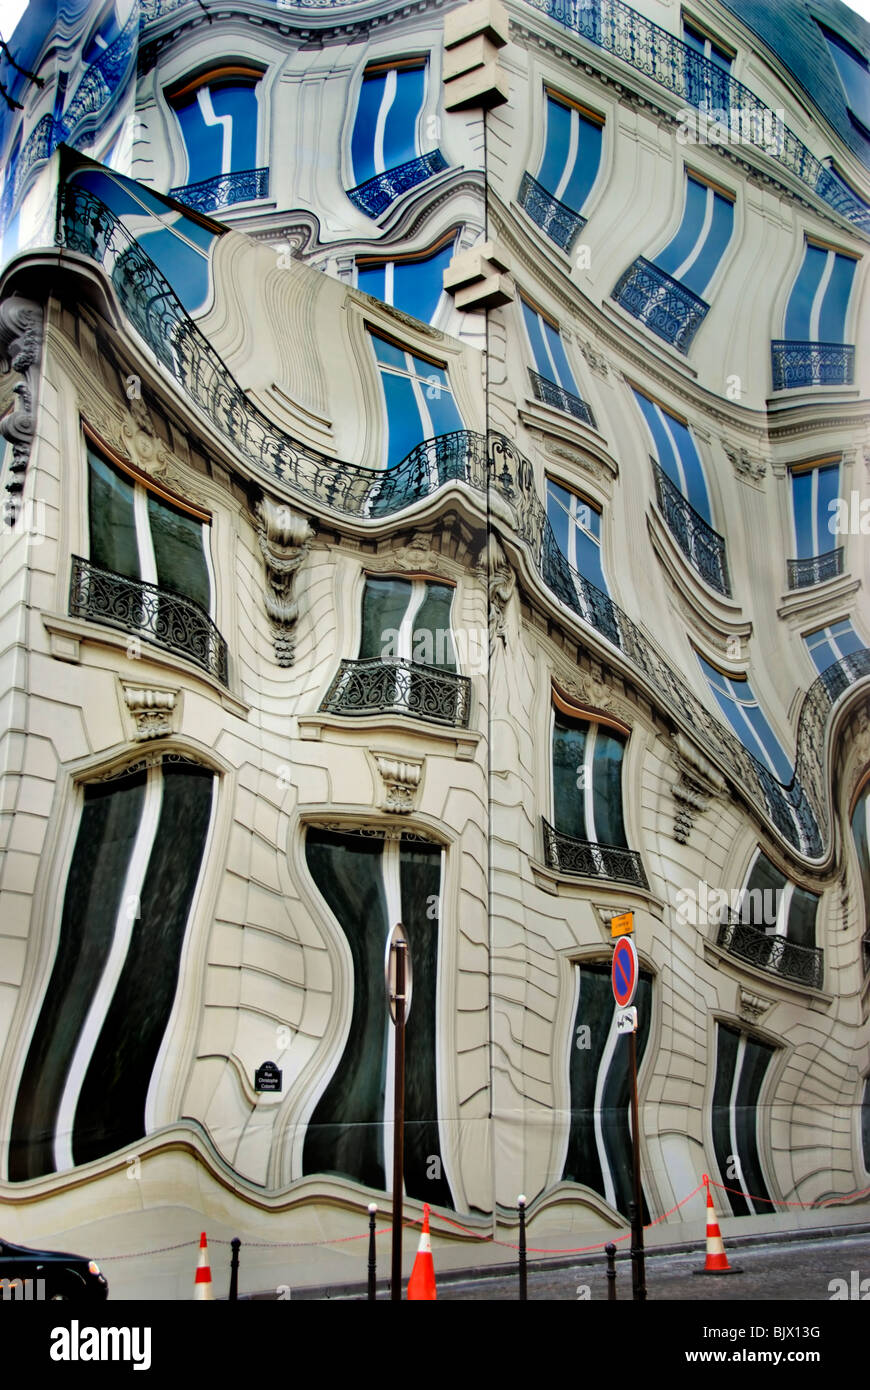 Paris, France, Surrealist Public Art on 'Bleecker Corporation'. Headquarters Building, - Stock Image